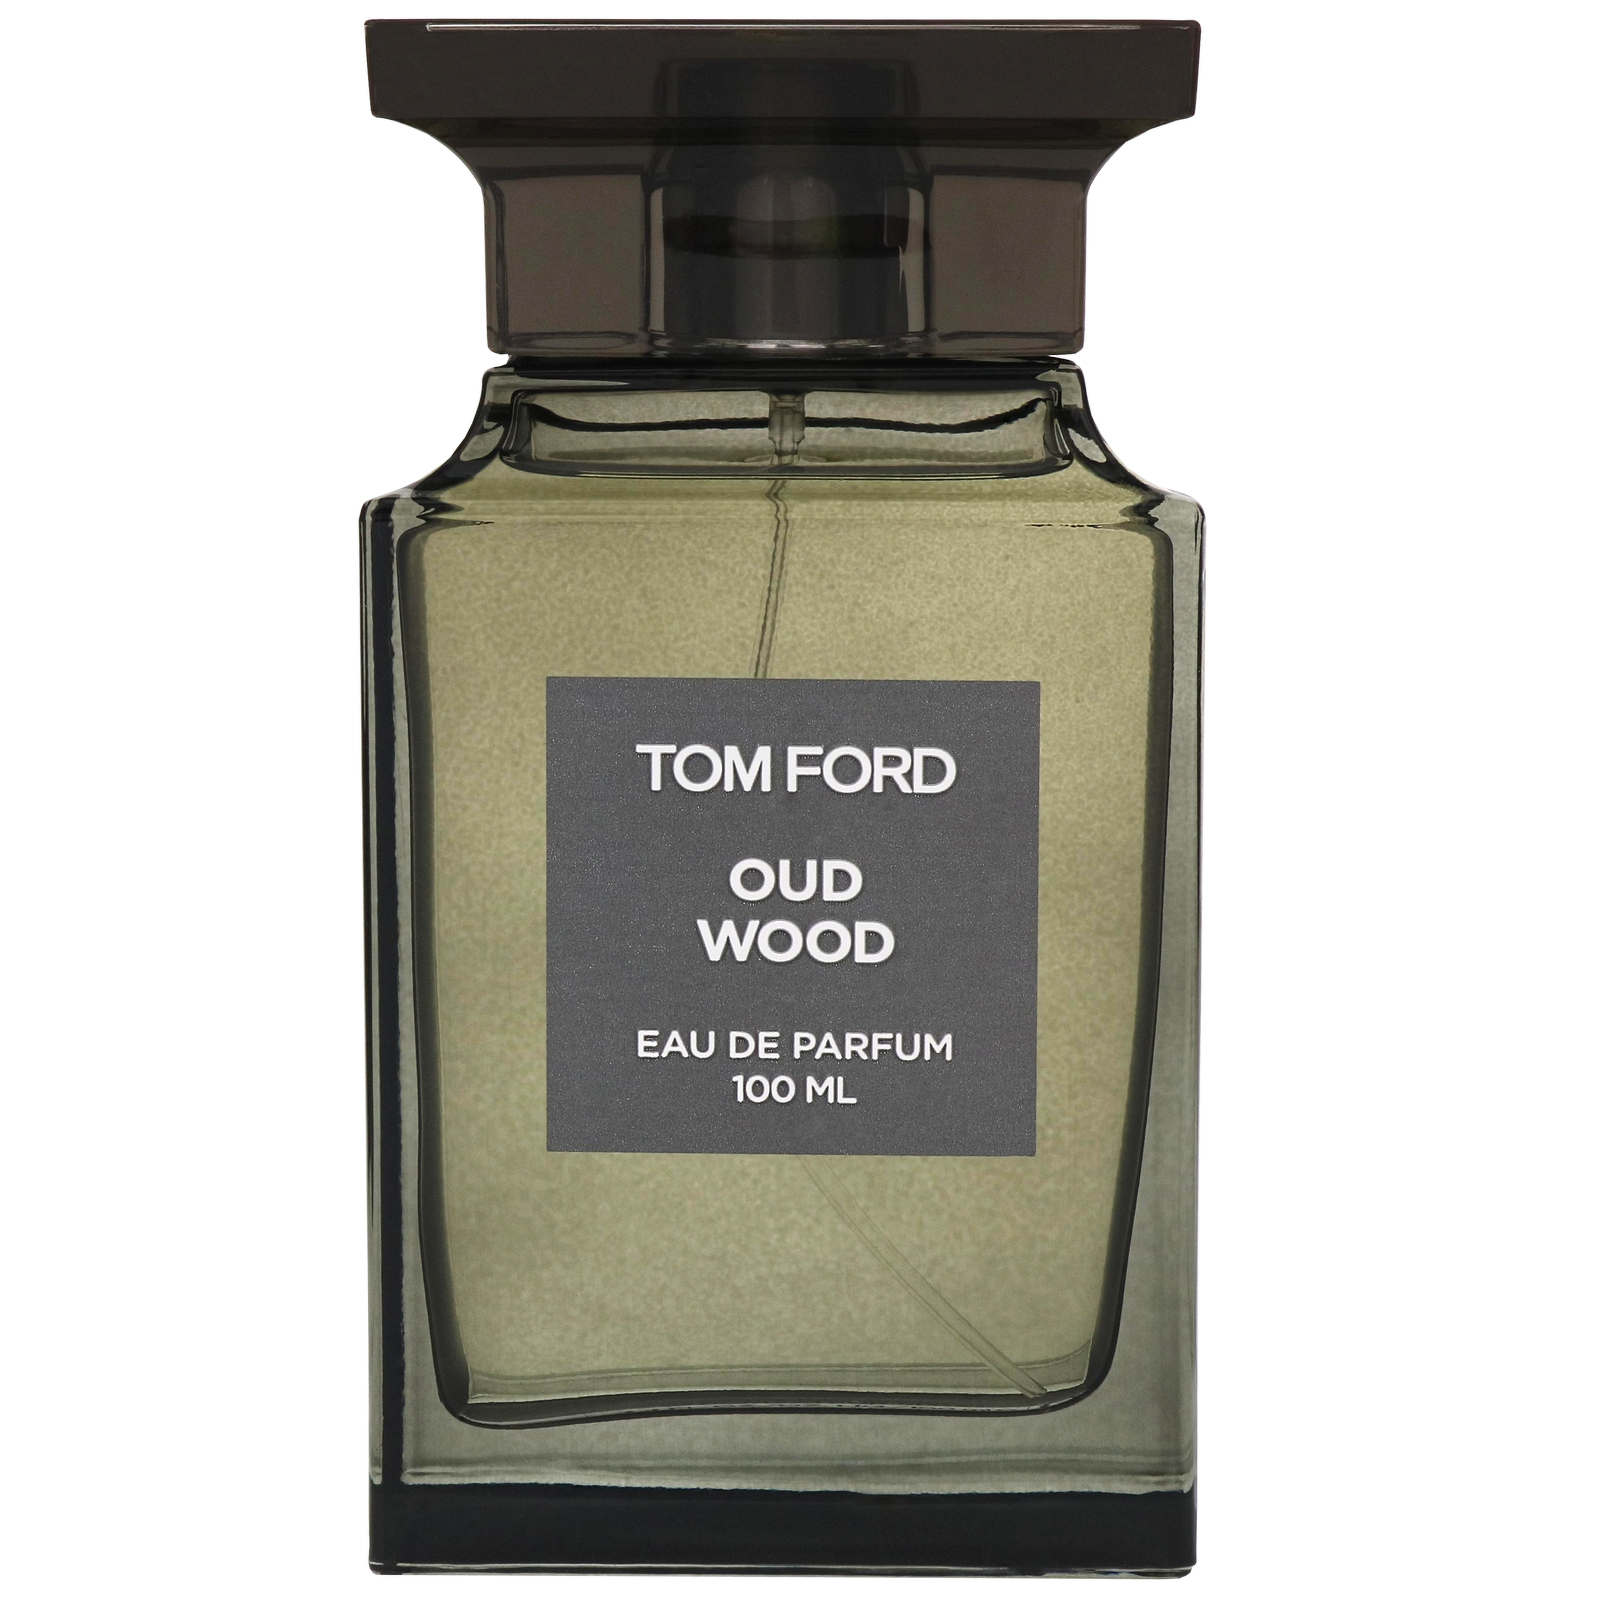 tom ford private blend oud wood eau de parfum spray 100ml perfume. Black Bedroom Furniture Sets. Home Design Ideas